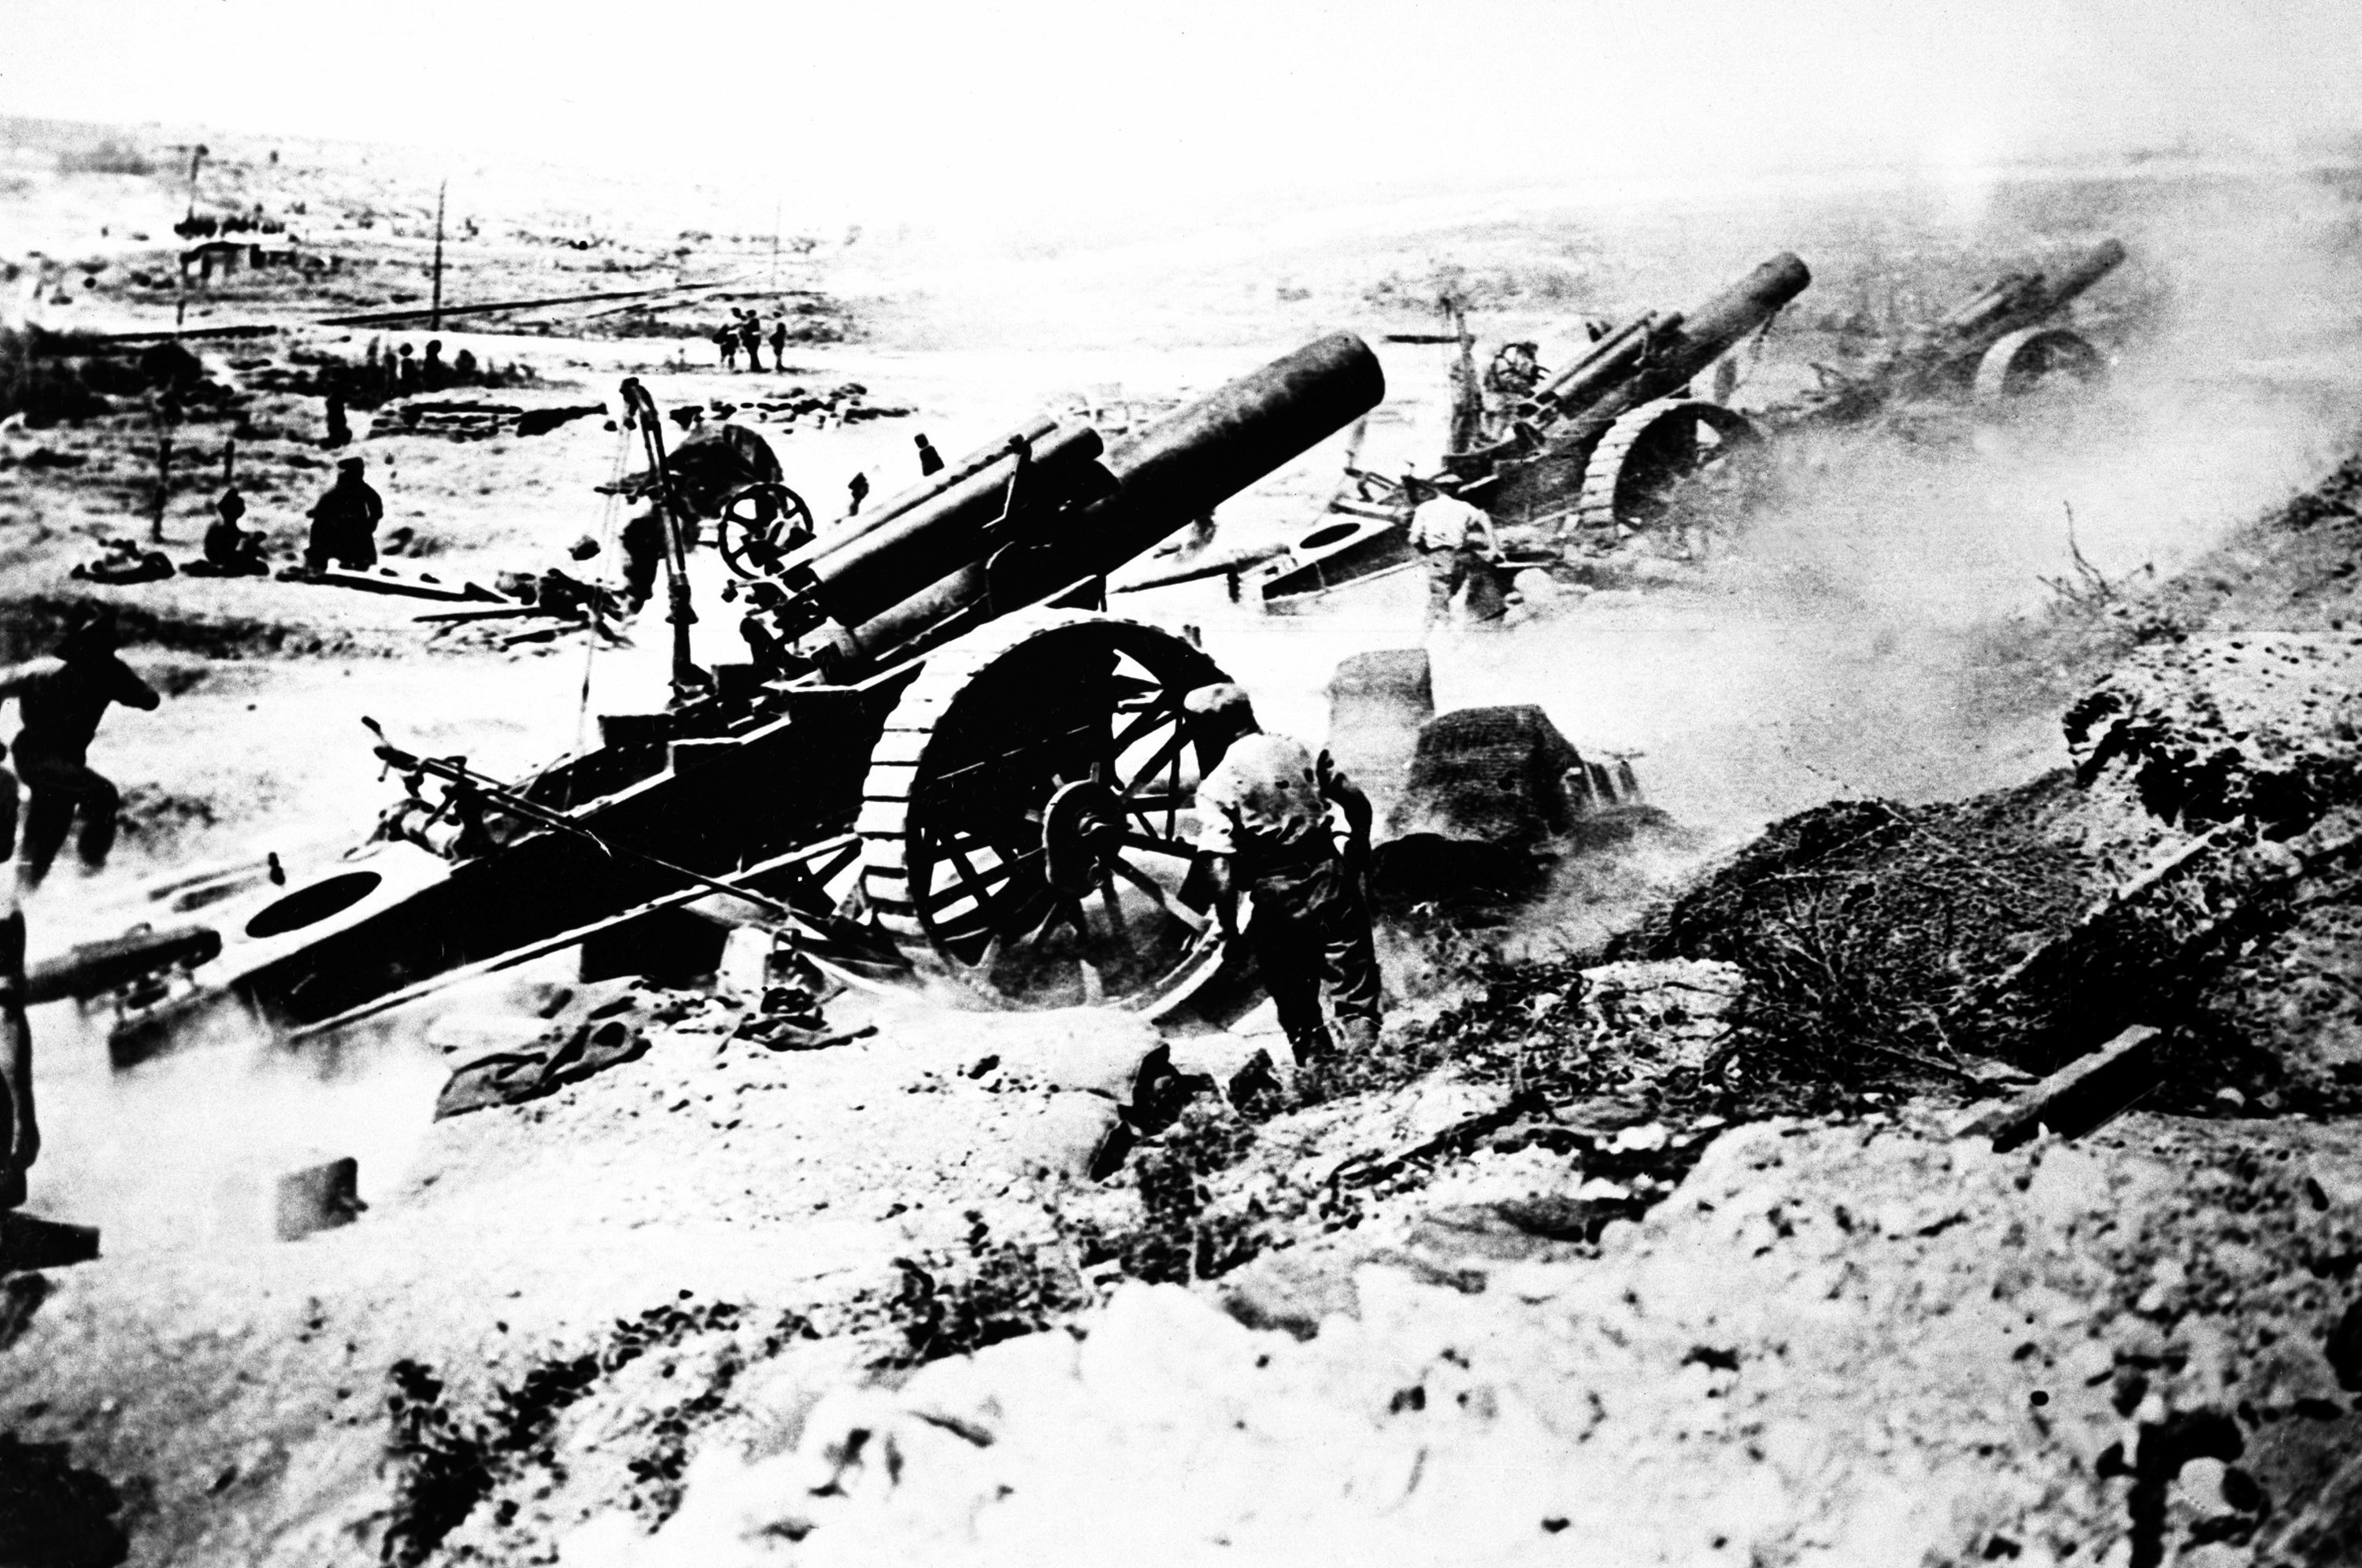 File:British artillery in action, World War I JPEG - Wikimedia Commons